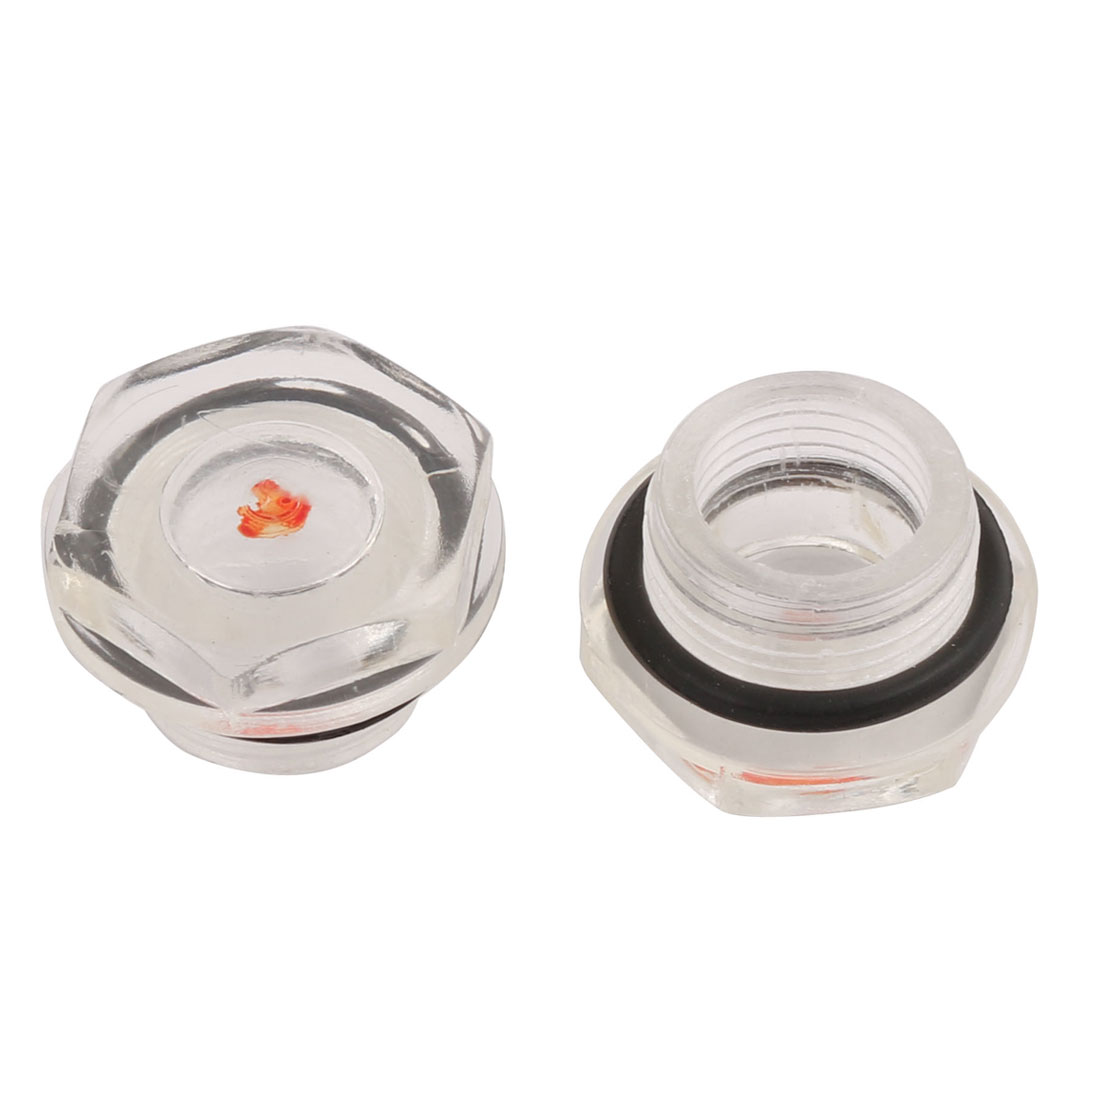 2Pcs 17mm Male Thread Dia Replacing Parts Liquid Sight Glass for Air Compressor